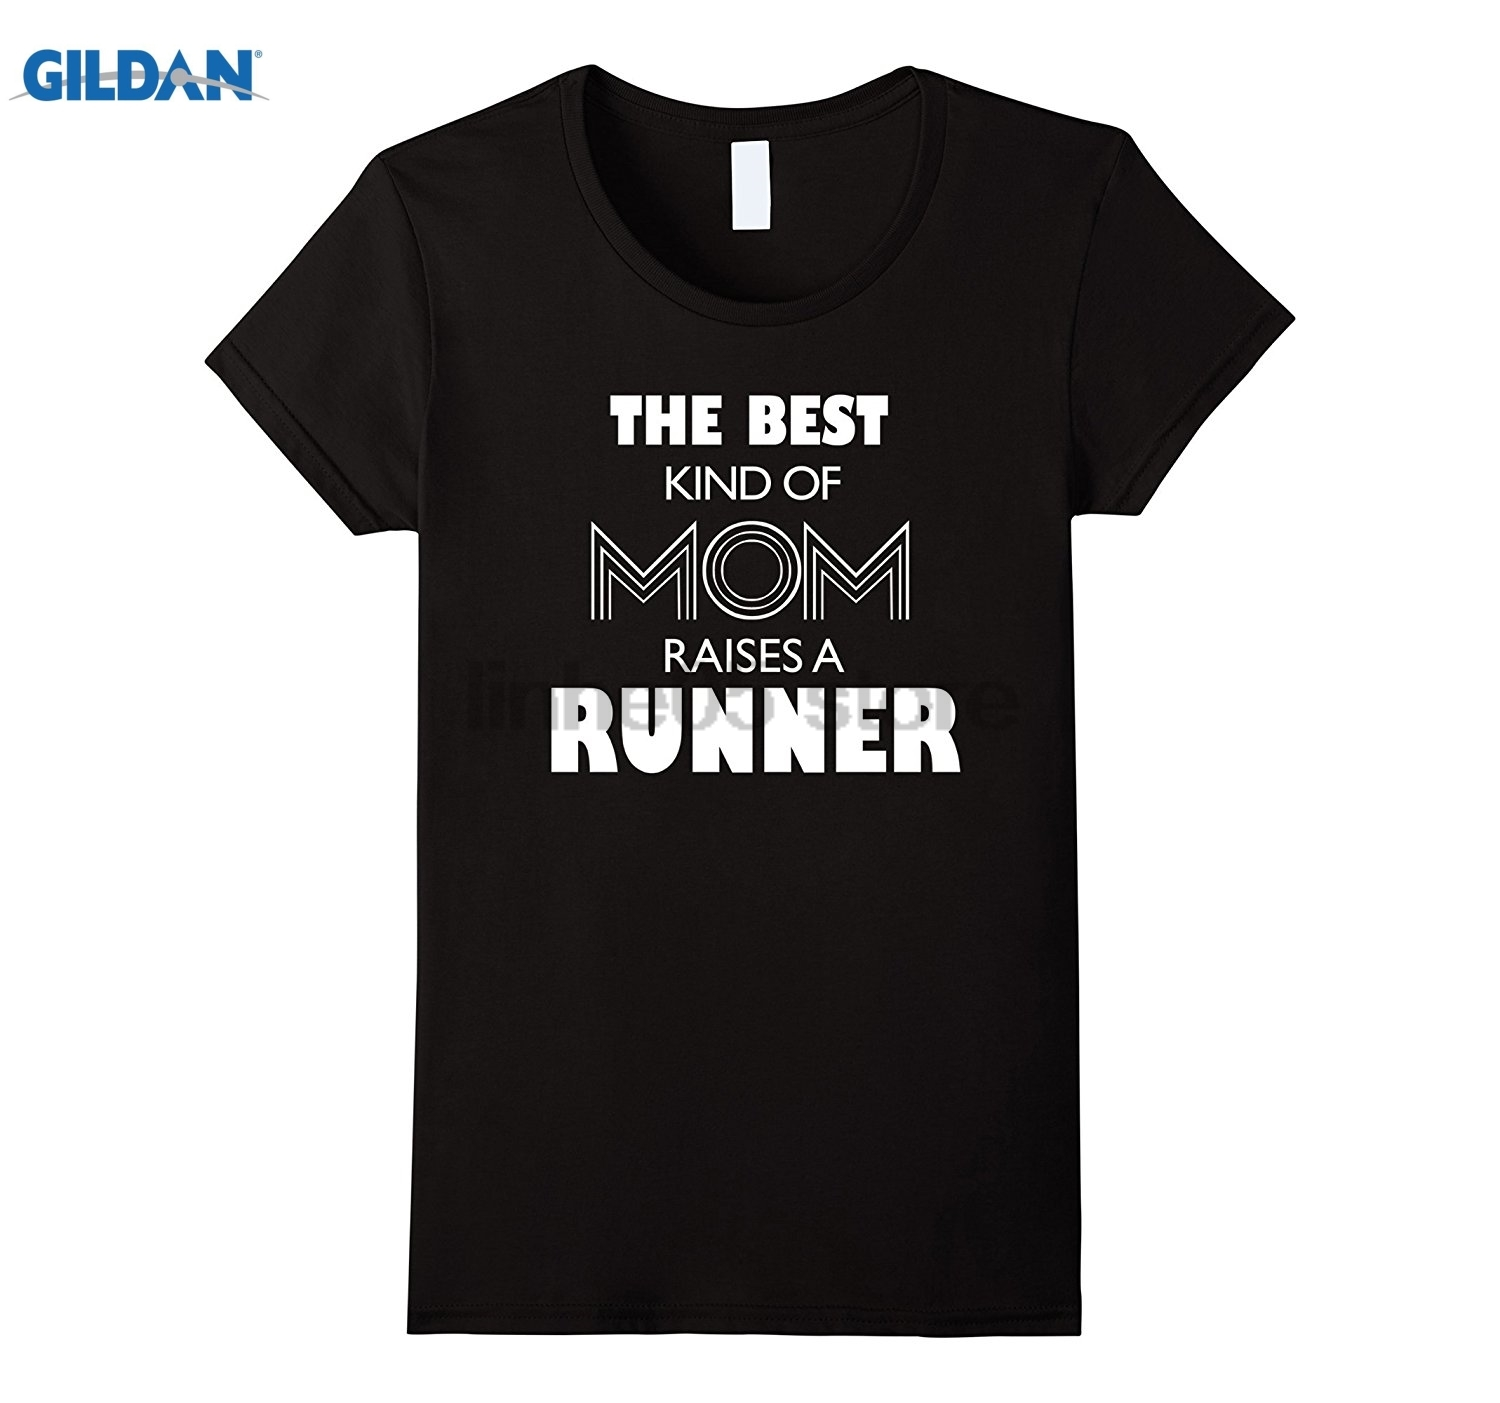 GILDAN Womens The Best Kind Of Mom Raises A Runner Tshirt Mother Day Gifts Womens T-shir ...